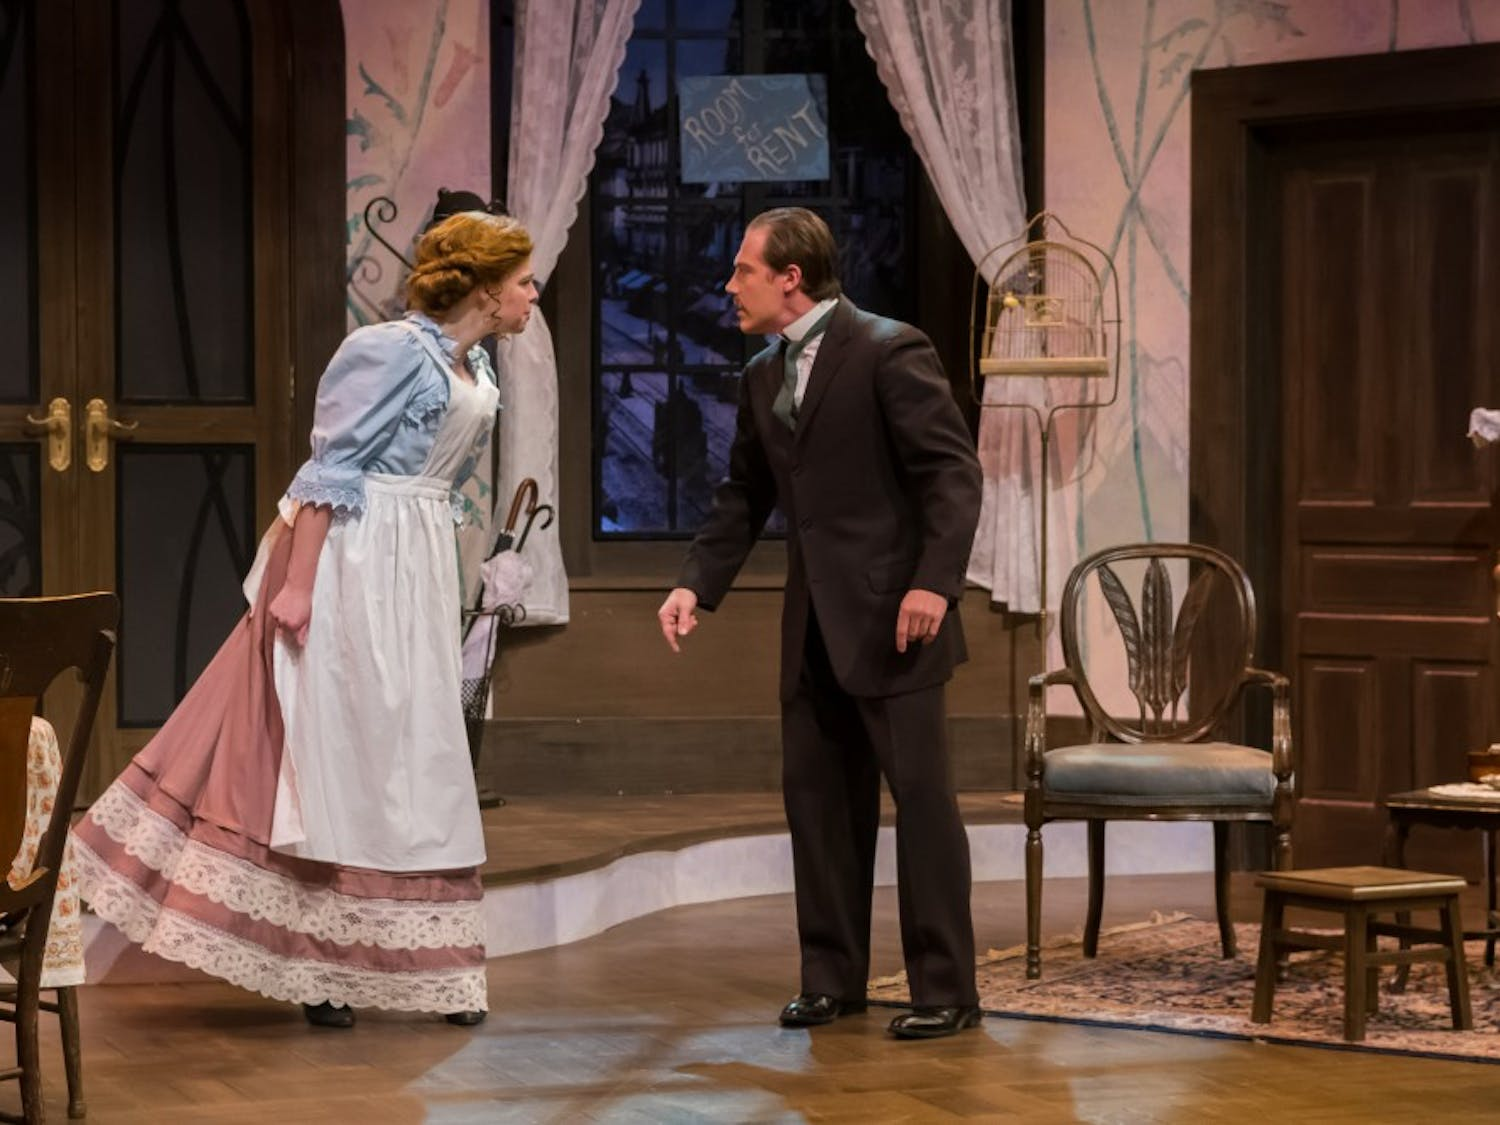 """Kerry Billings and Kyle Wessel star inUniversity Theatre's production of """"The Underpants,"""" showingfrom April 13 to 30 at Mitchell Theatre."""